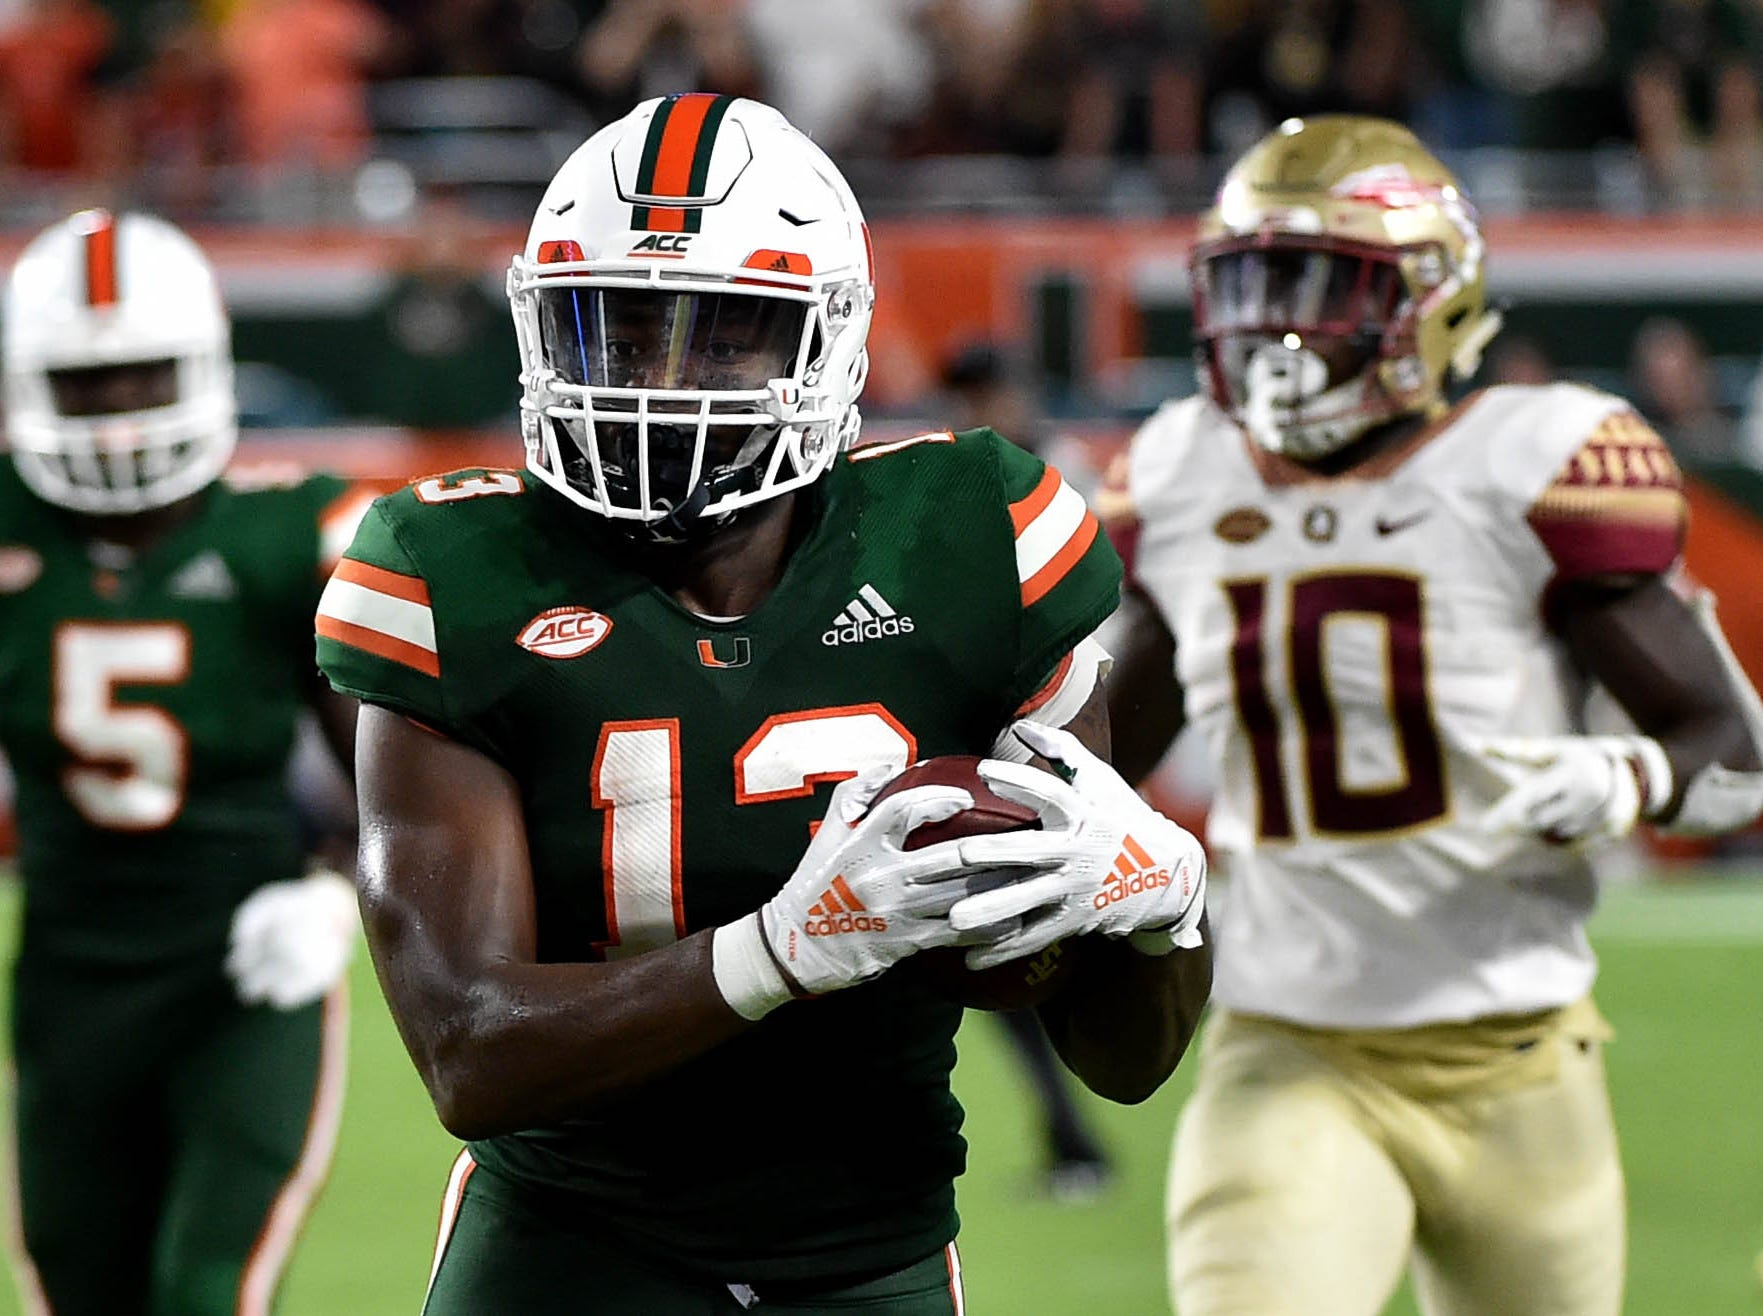 Oct 6, 2018; Miami Gardens, FL, USA; Miami Hurricanes running back DeeJay Dallas (13) carries the ball past Florida State Seminoles defensive back Calvin Brewton (10) during the second half at Hard Rock Stadium. Mandatory Credit: Steve Mitchell-USA TODAY Sports